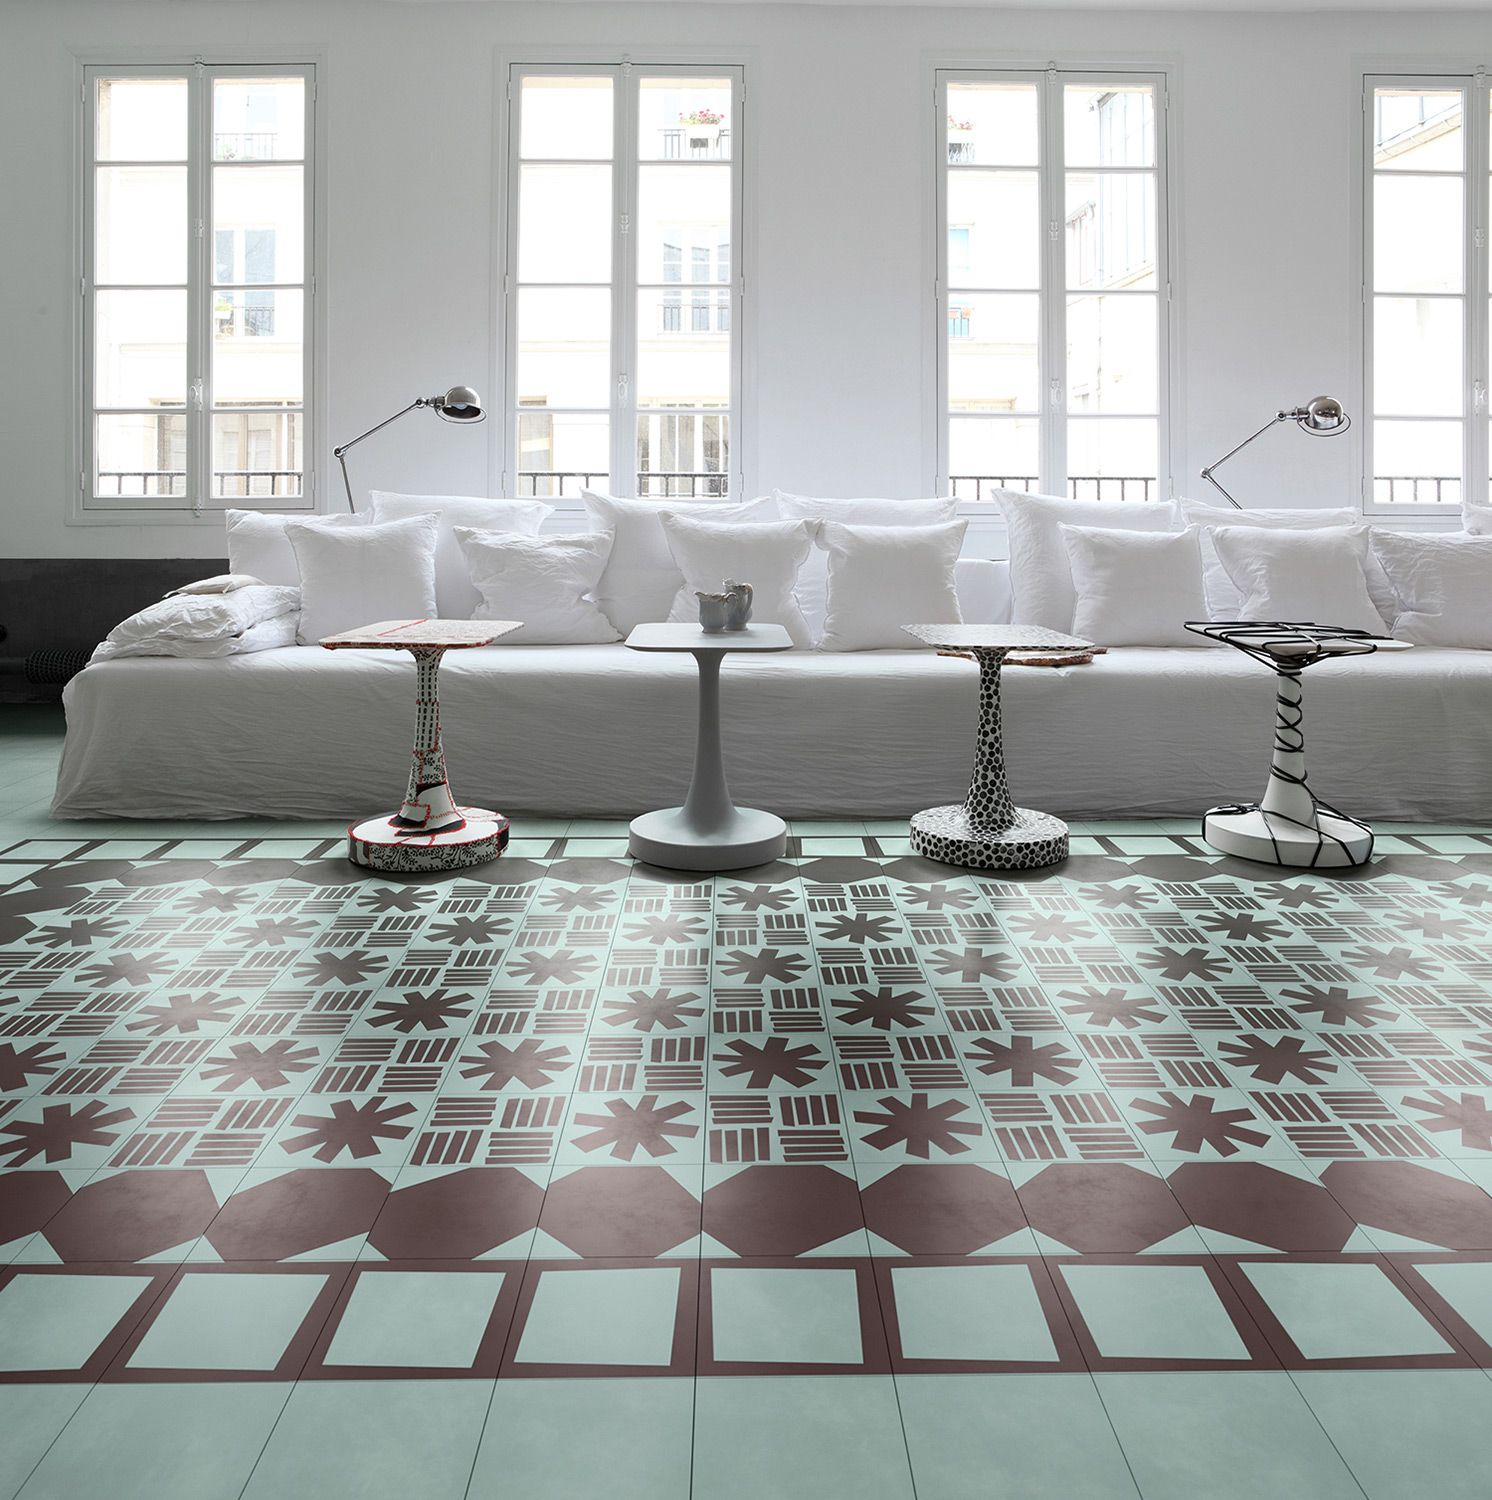 Asterisque, Bandes, Decoupe and Carreau: designed by Paola Navone ...